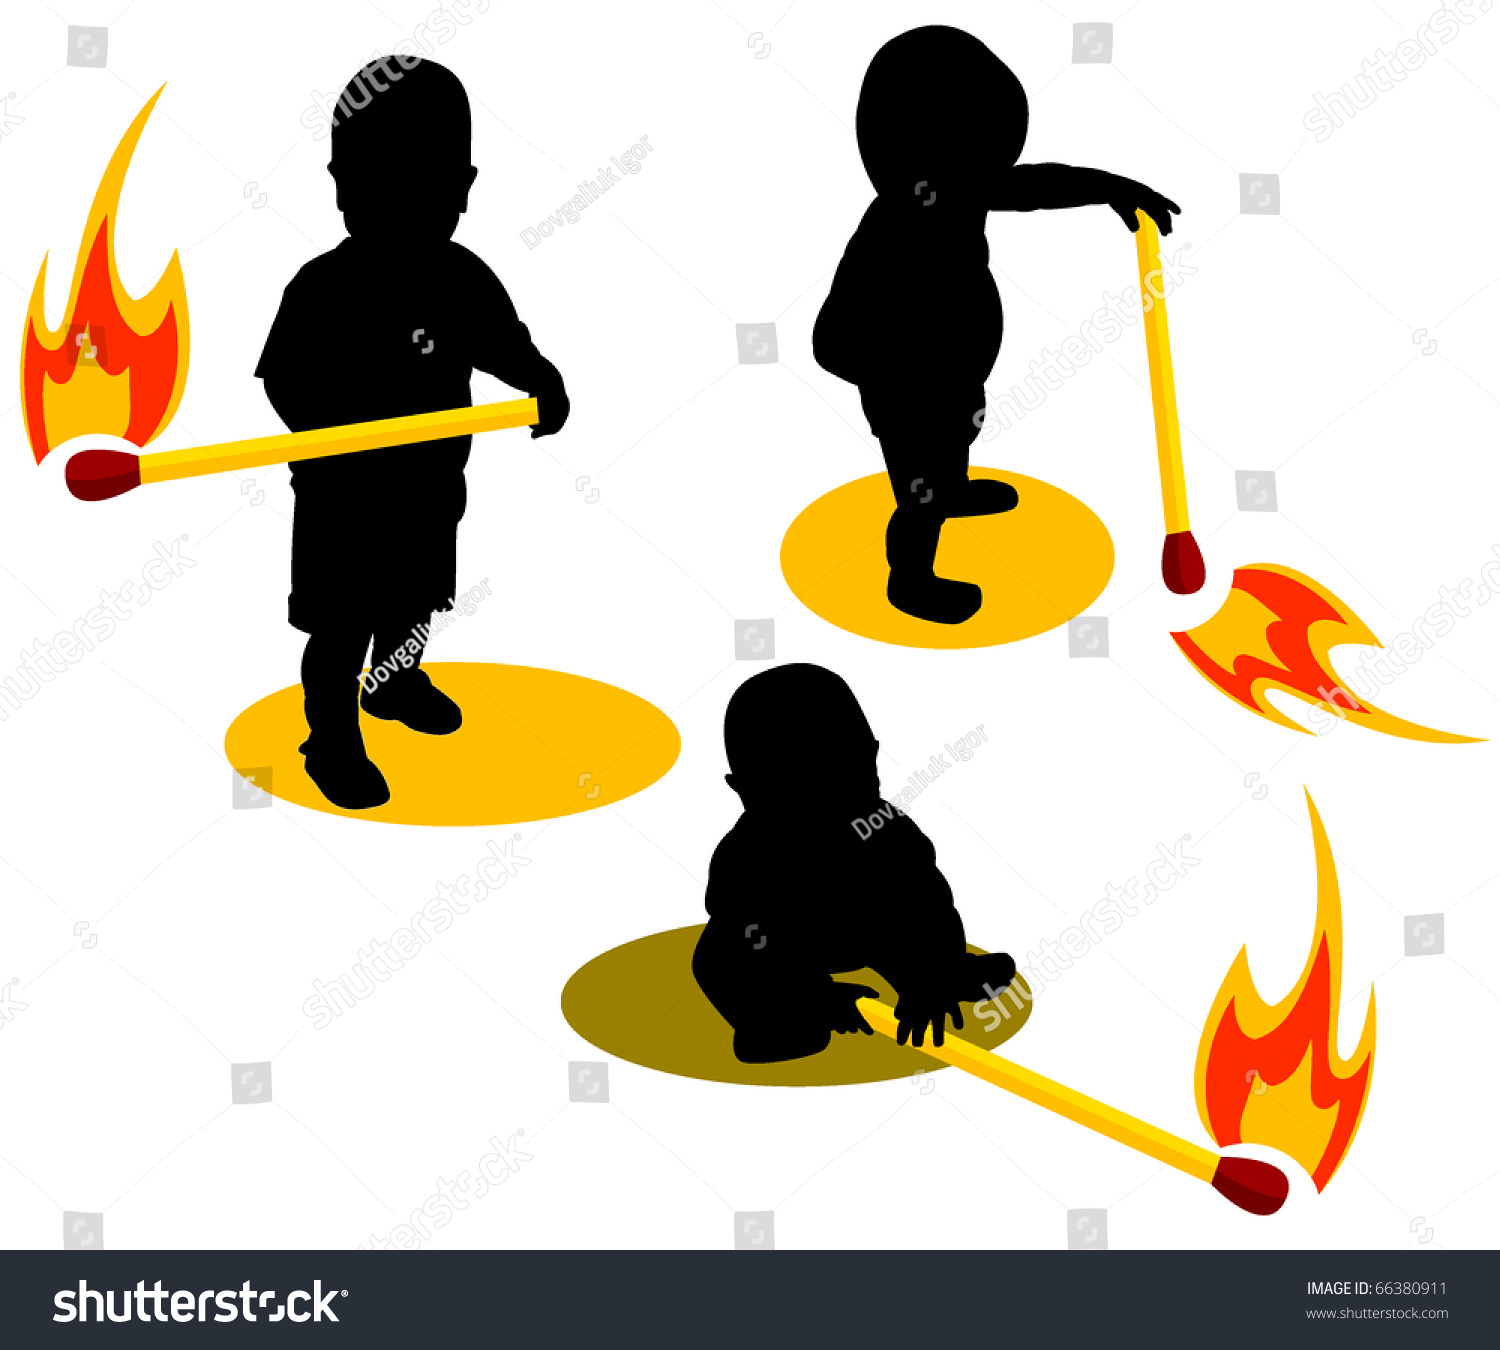 playing with matches - AOL Image Search Results for Matches Clip Art  303mzq